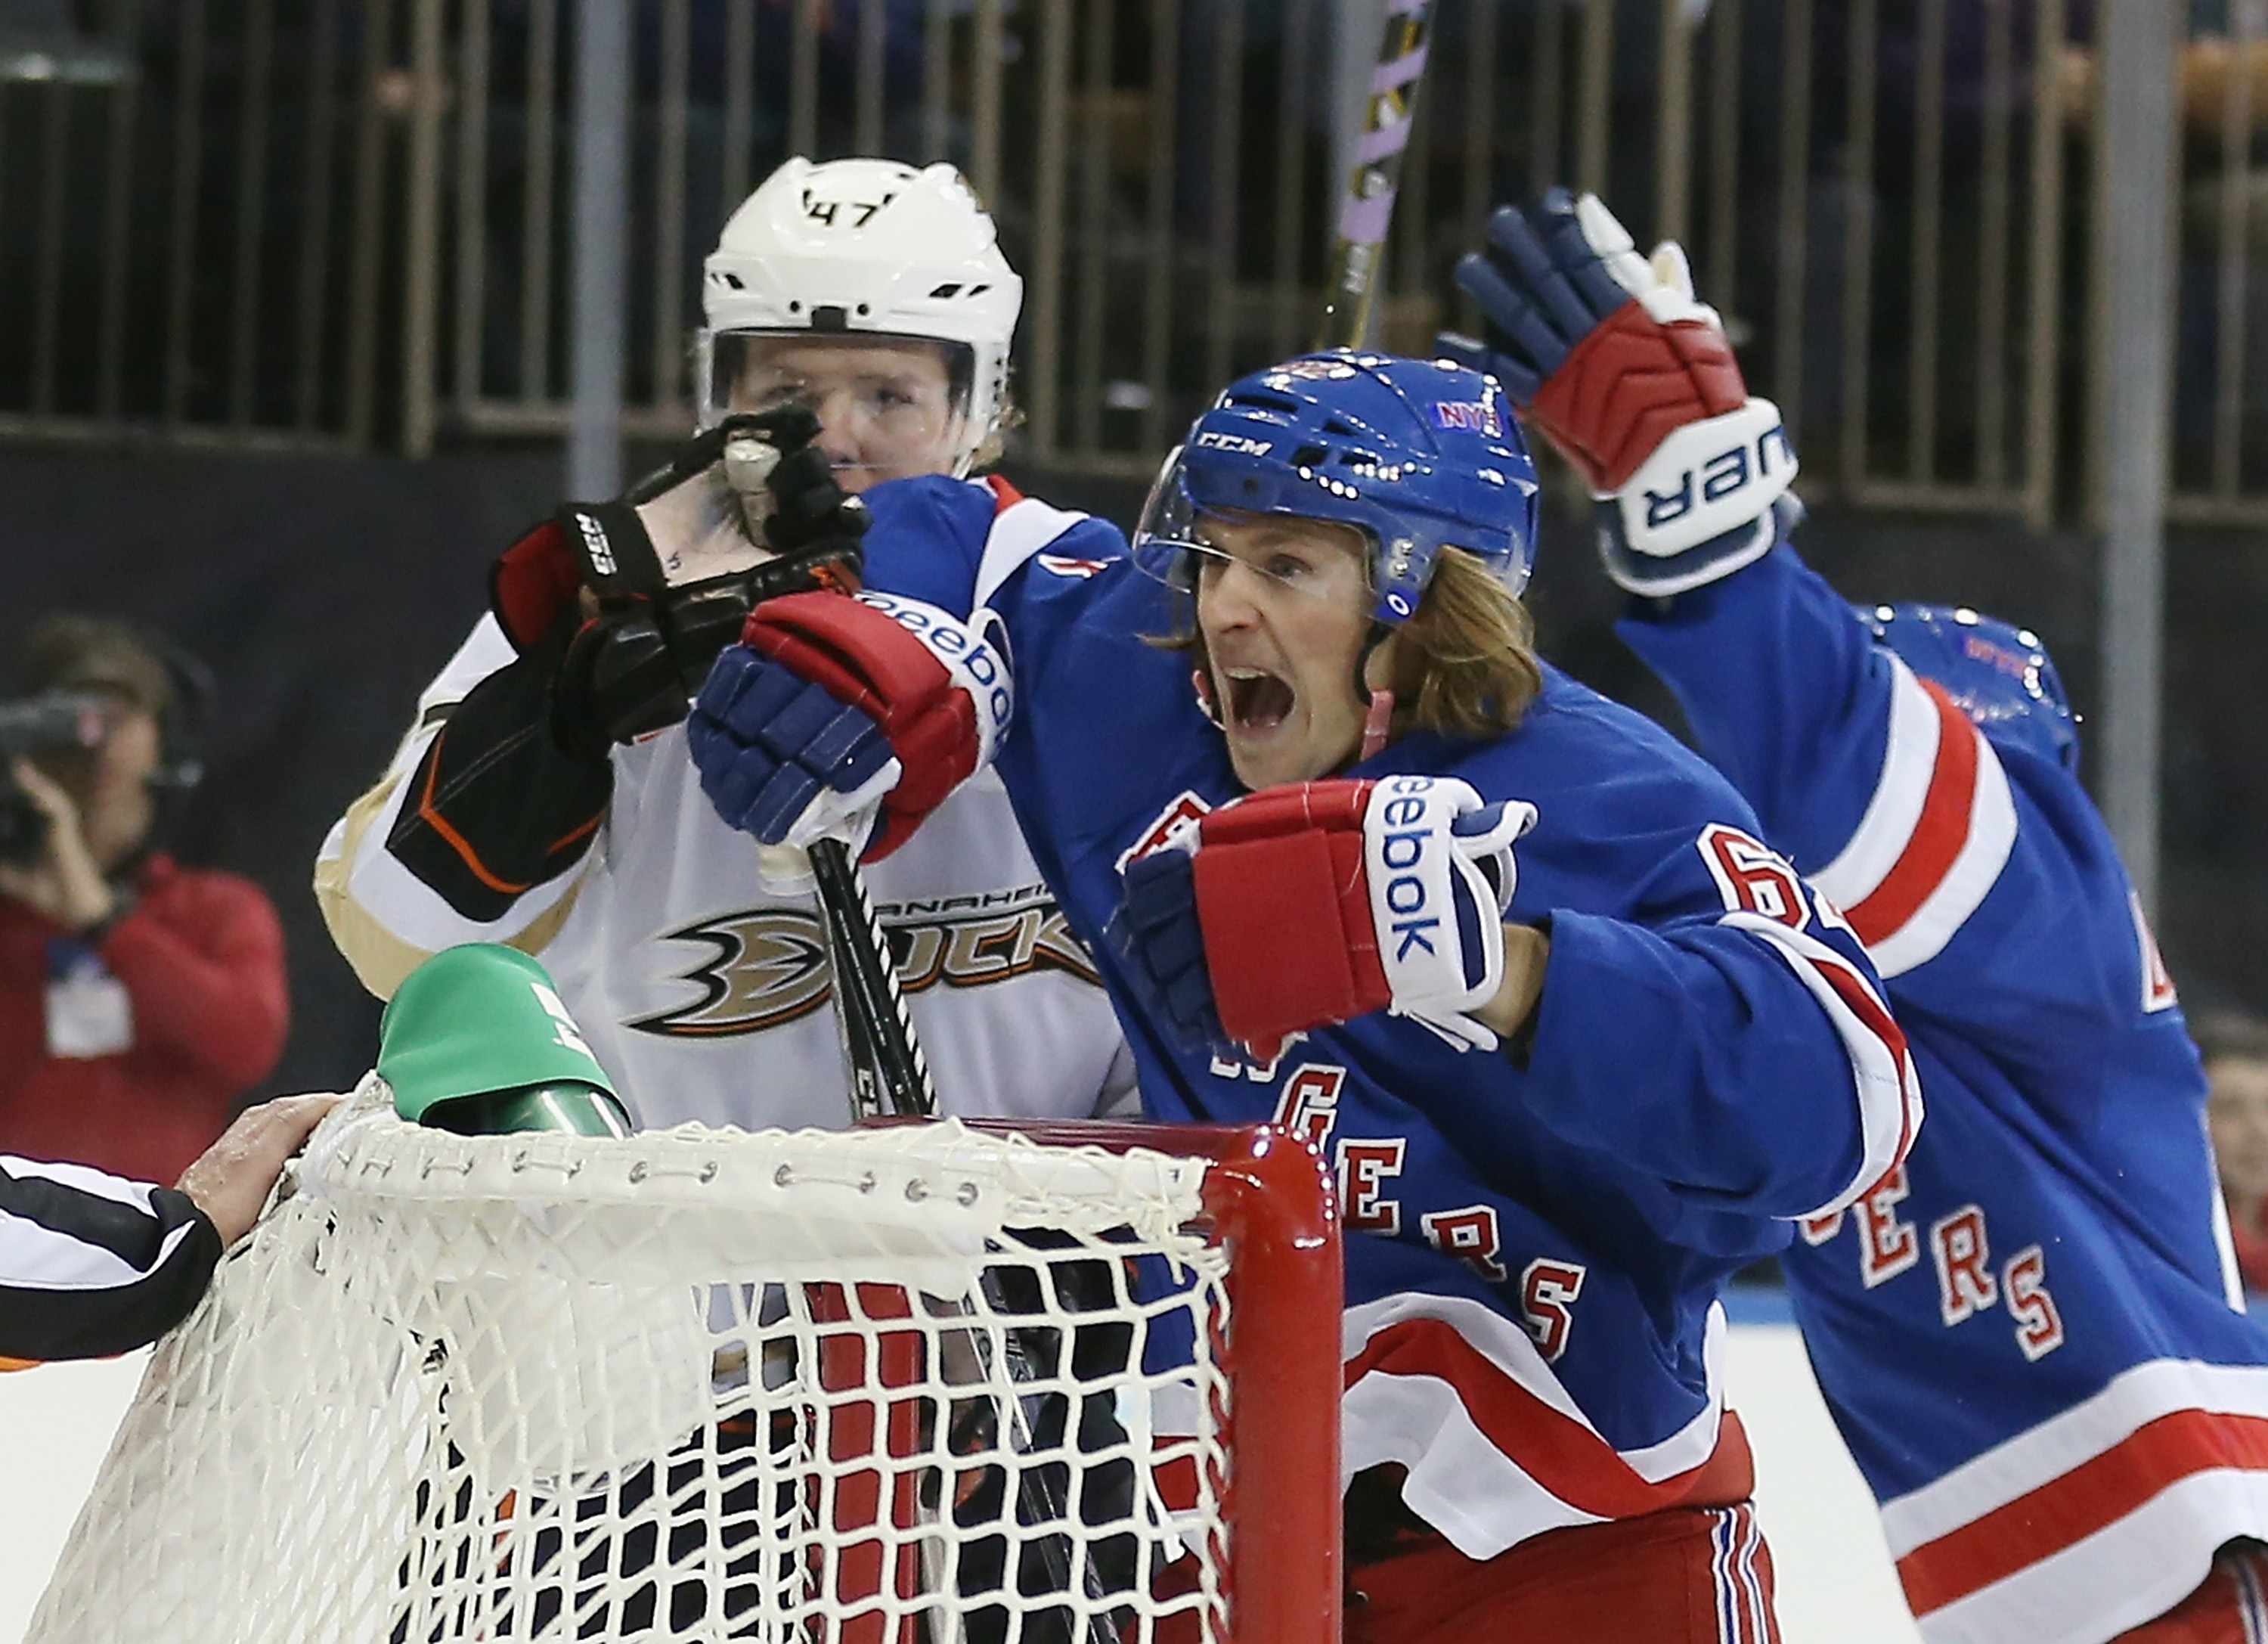 Carl Hagelin and Hampus Lindholm will be celebrating the same goals next season.